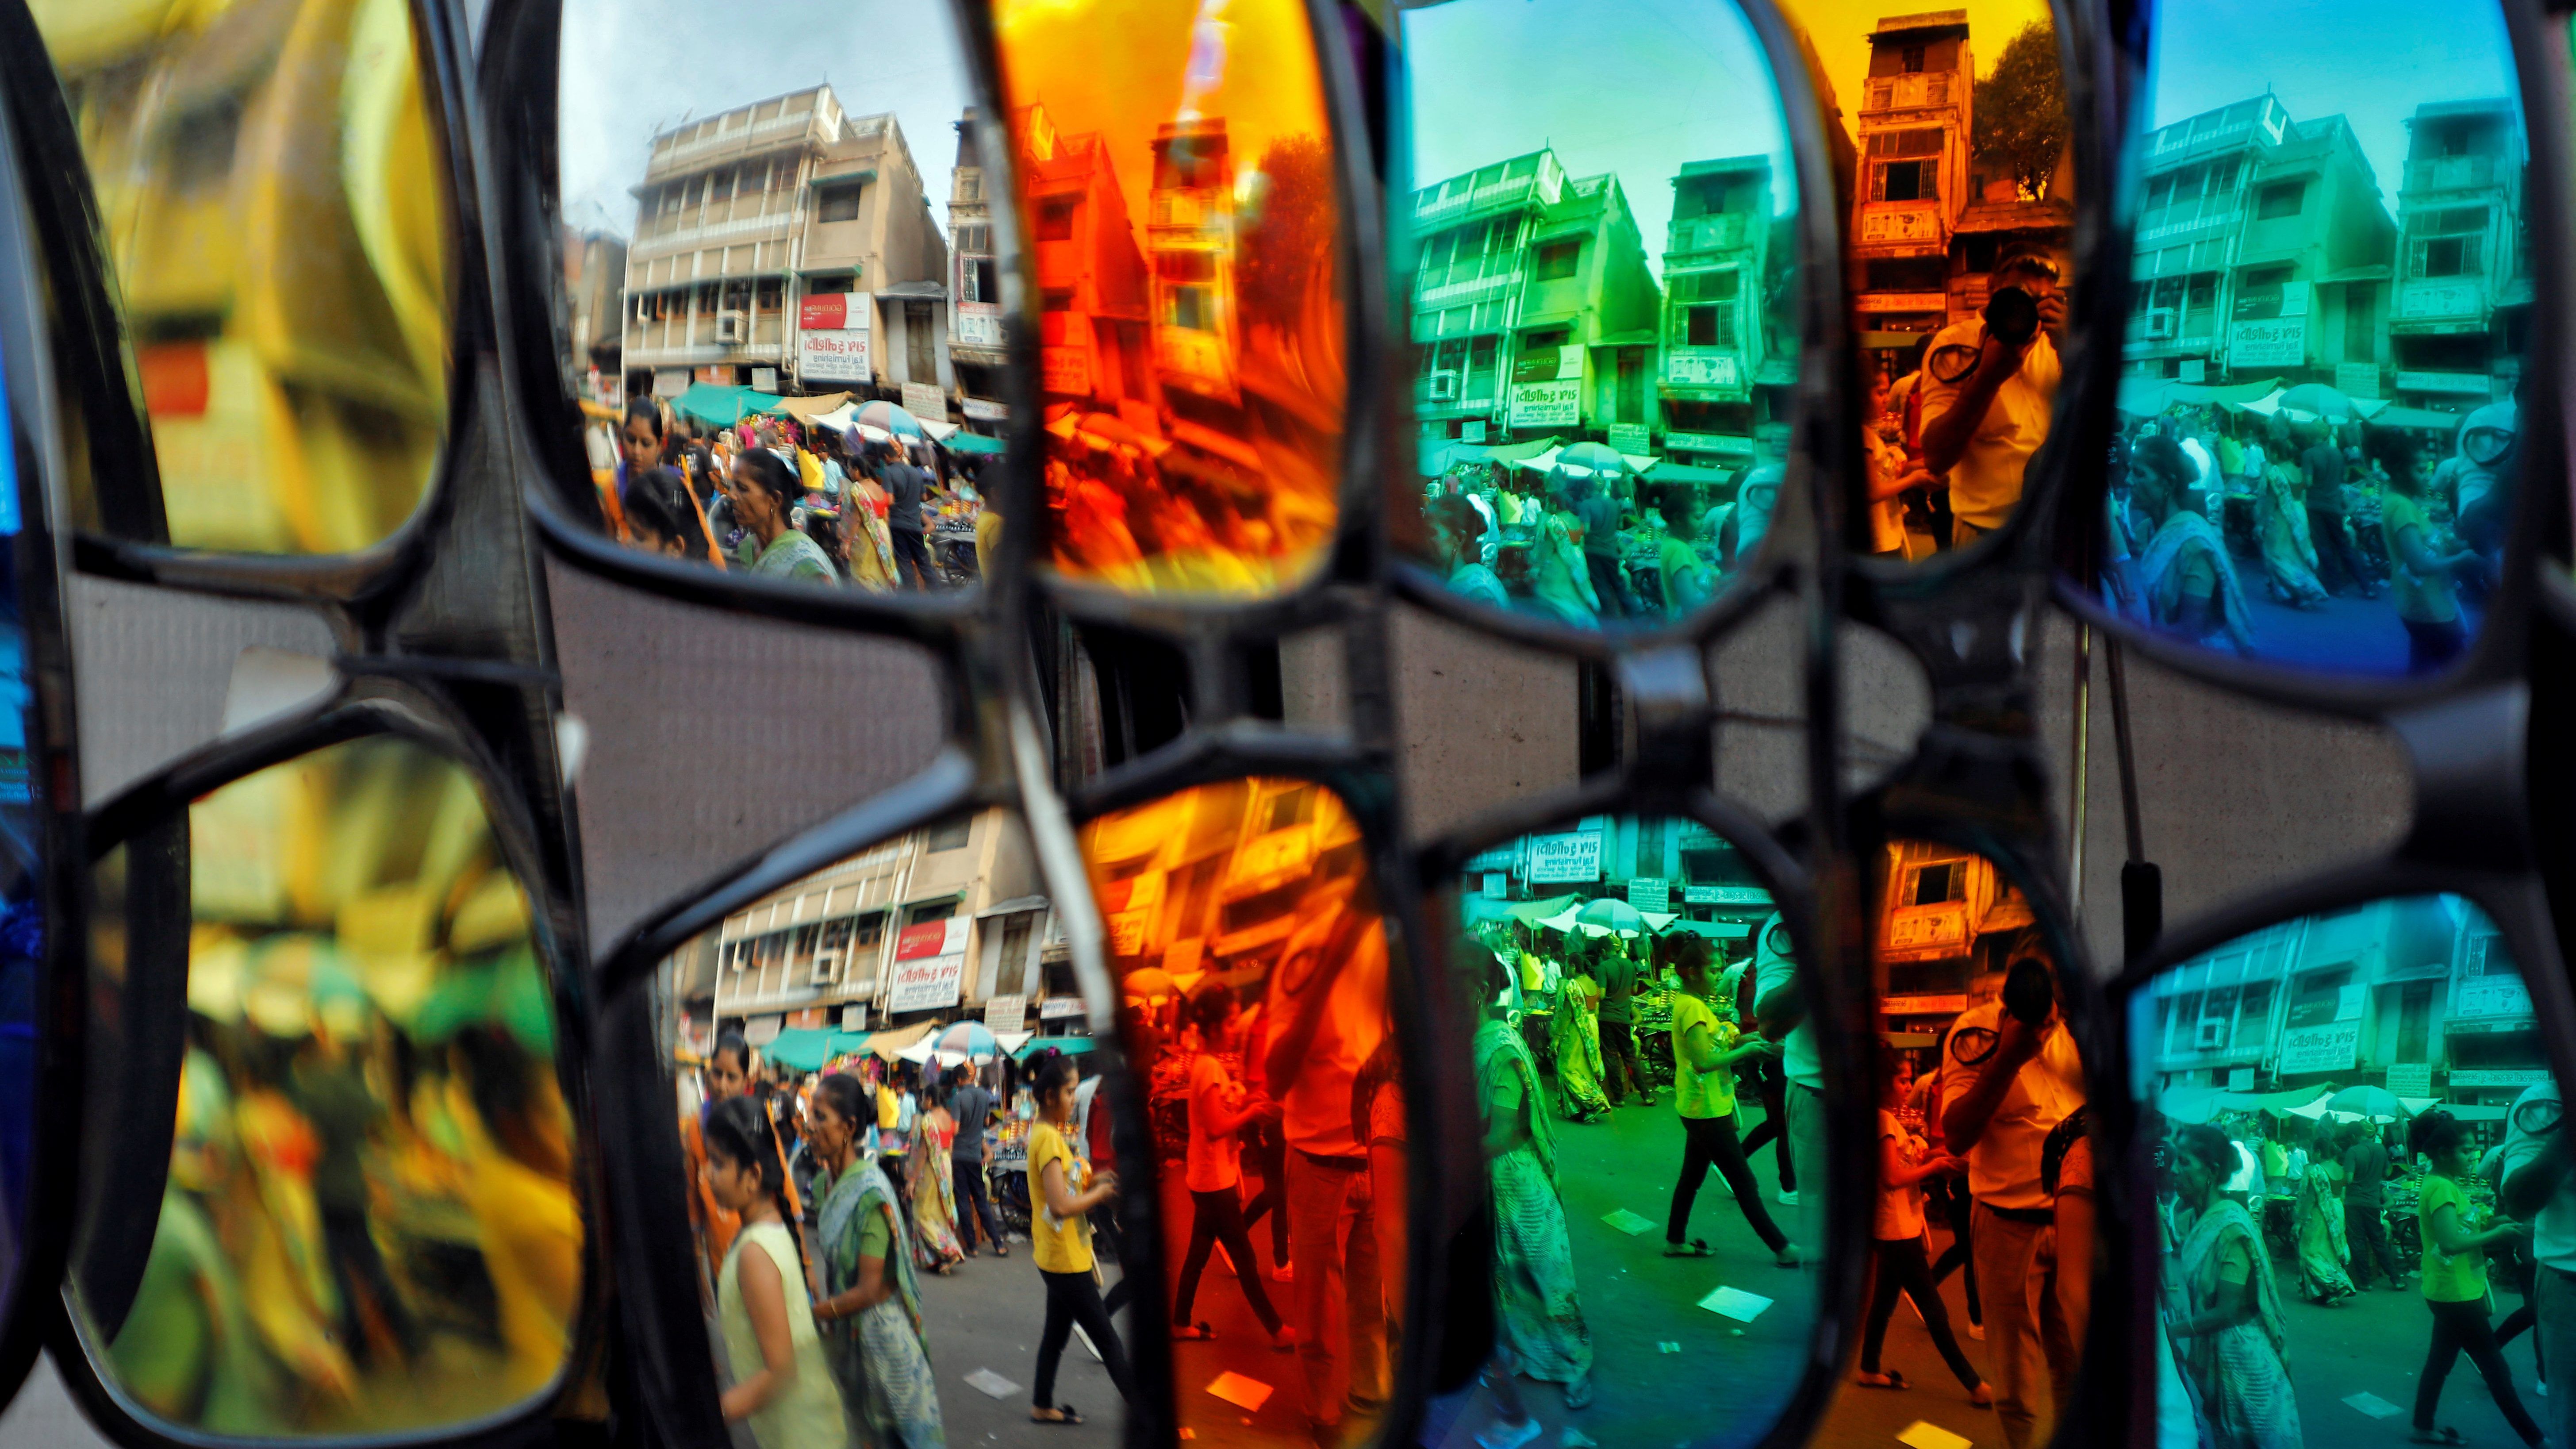 Shoppers are reflected in sunglasses on display for sale at a market place ahead of Diwali in Ahmedabad